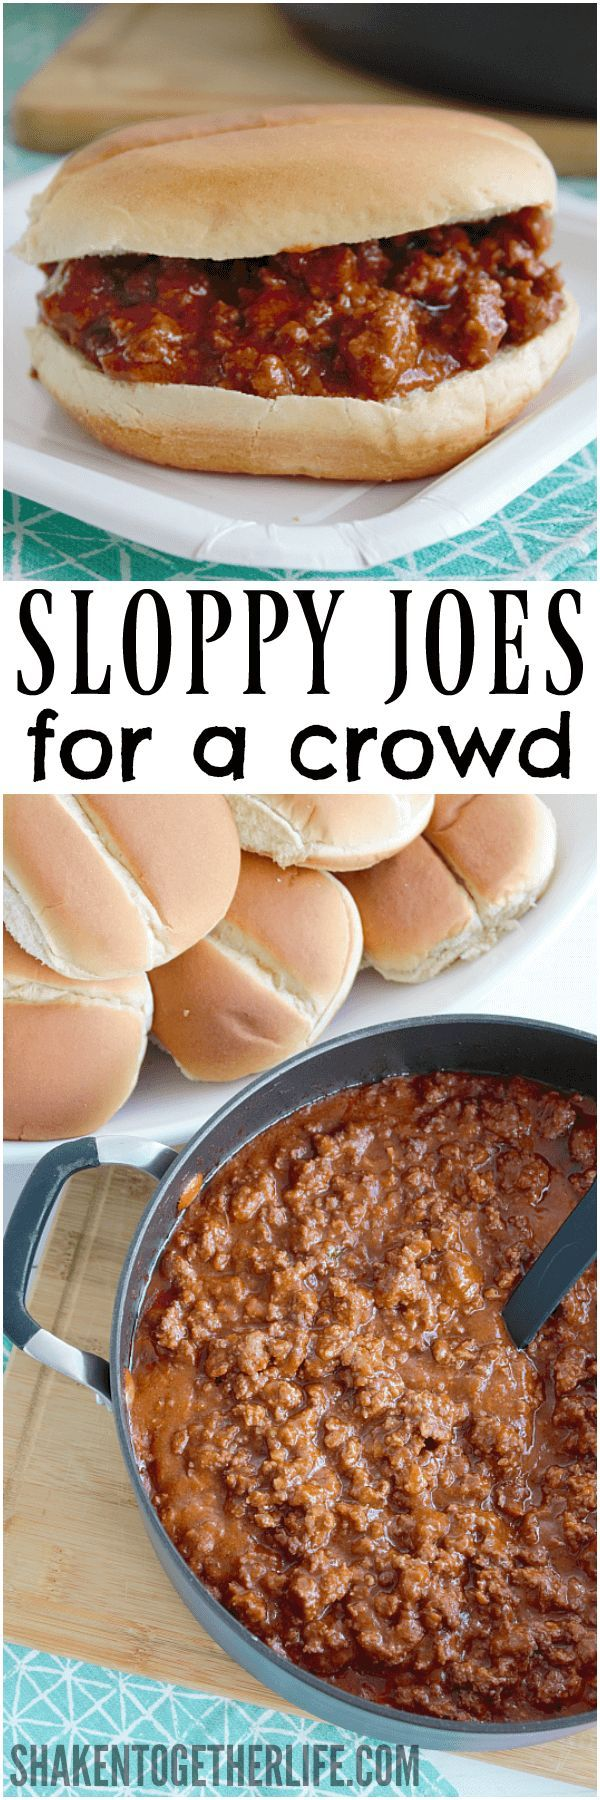 Need A Budget Friendly Meal For Big Group Try Our Sloppy Joes Crowd With Only 5 Ingredients This Recipe Is Hit Large Extended Family